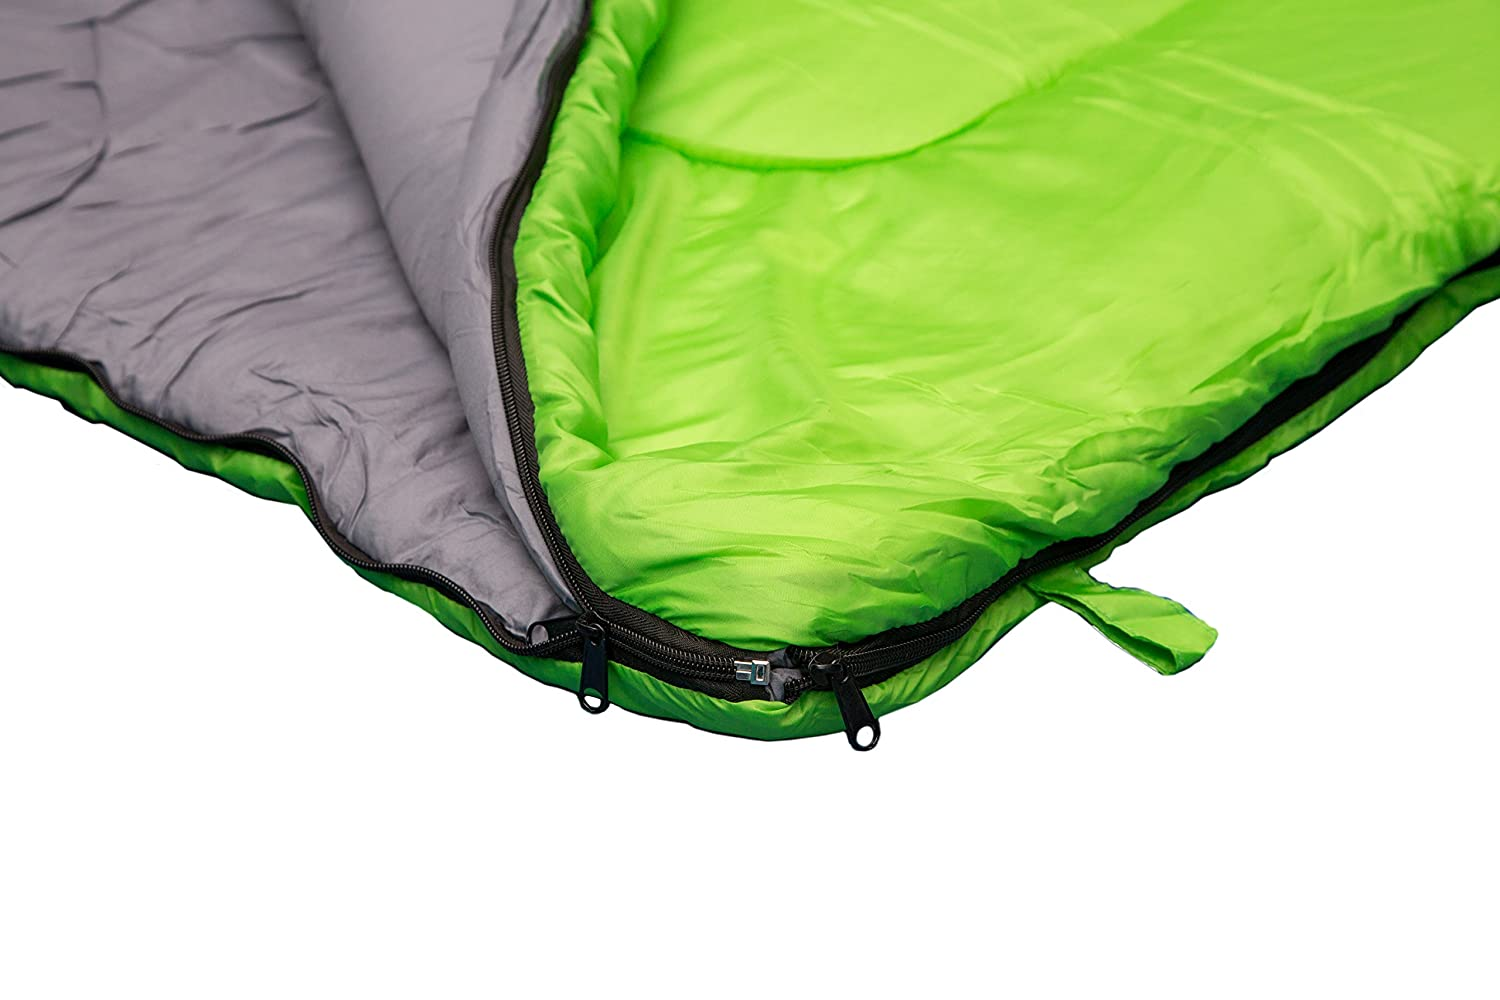 Backpacking /& Camping Youth /& Adults Great for Kids Girls Ultralight and Compact Bags are Perfect for Hiking Ultralight and Compact Bags are Perfect for Hiking Camping /& Travel. Boys REVALCAMP Sleeping Bag Indoor /& Outdoor Use Teens /& Adults